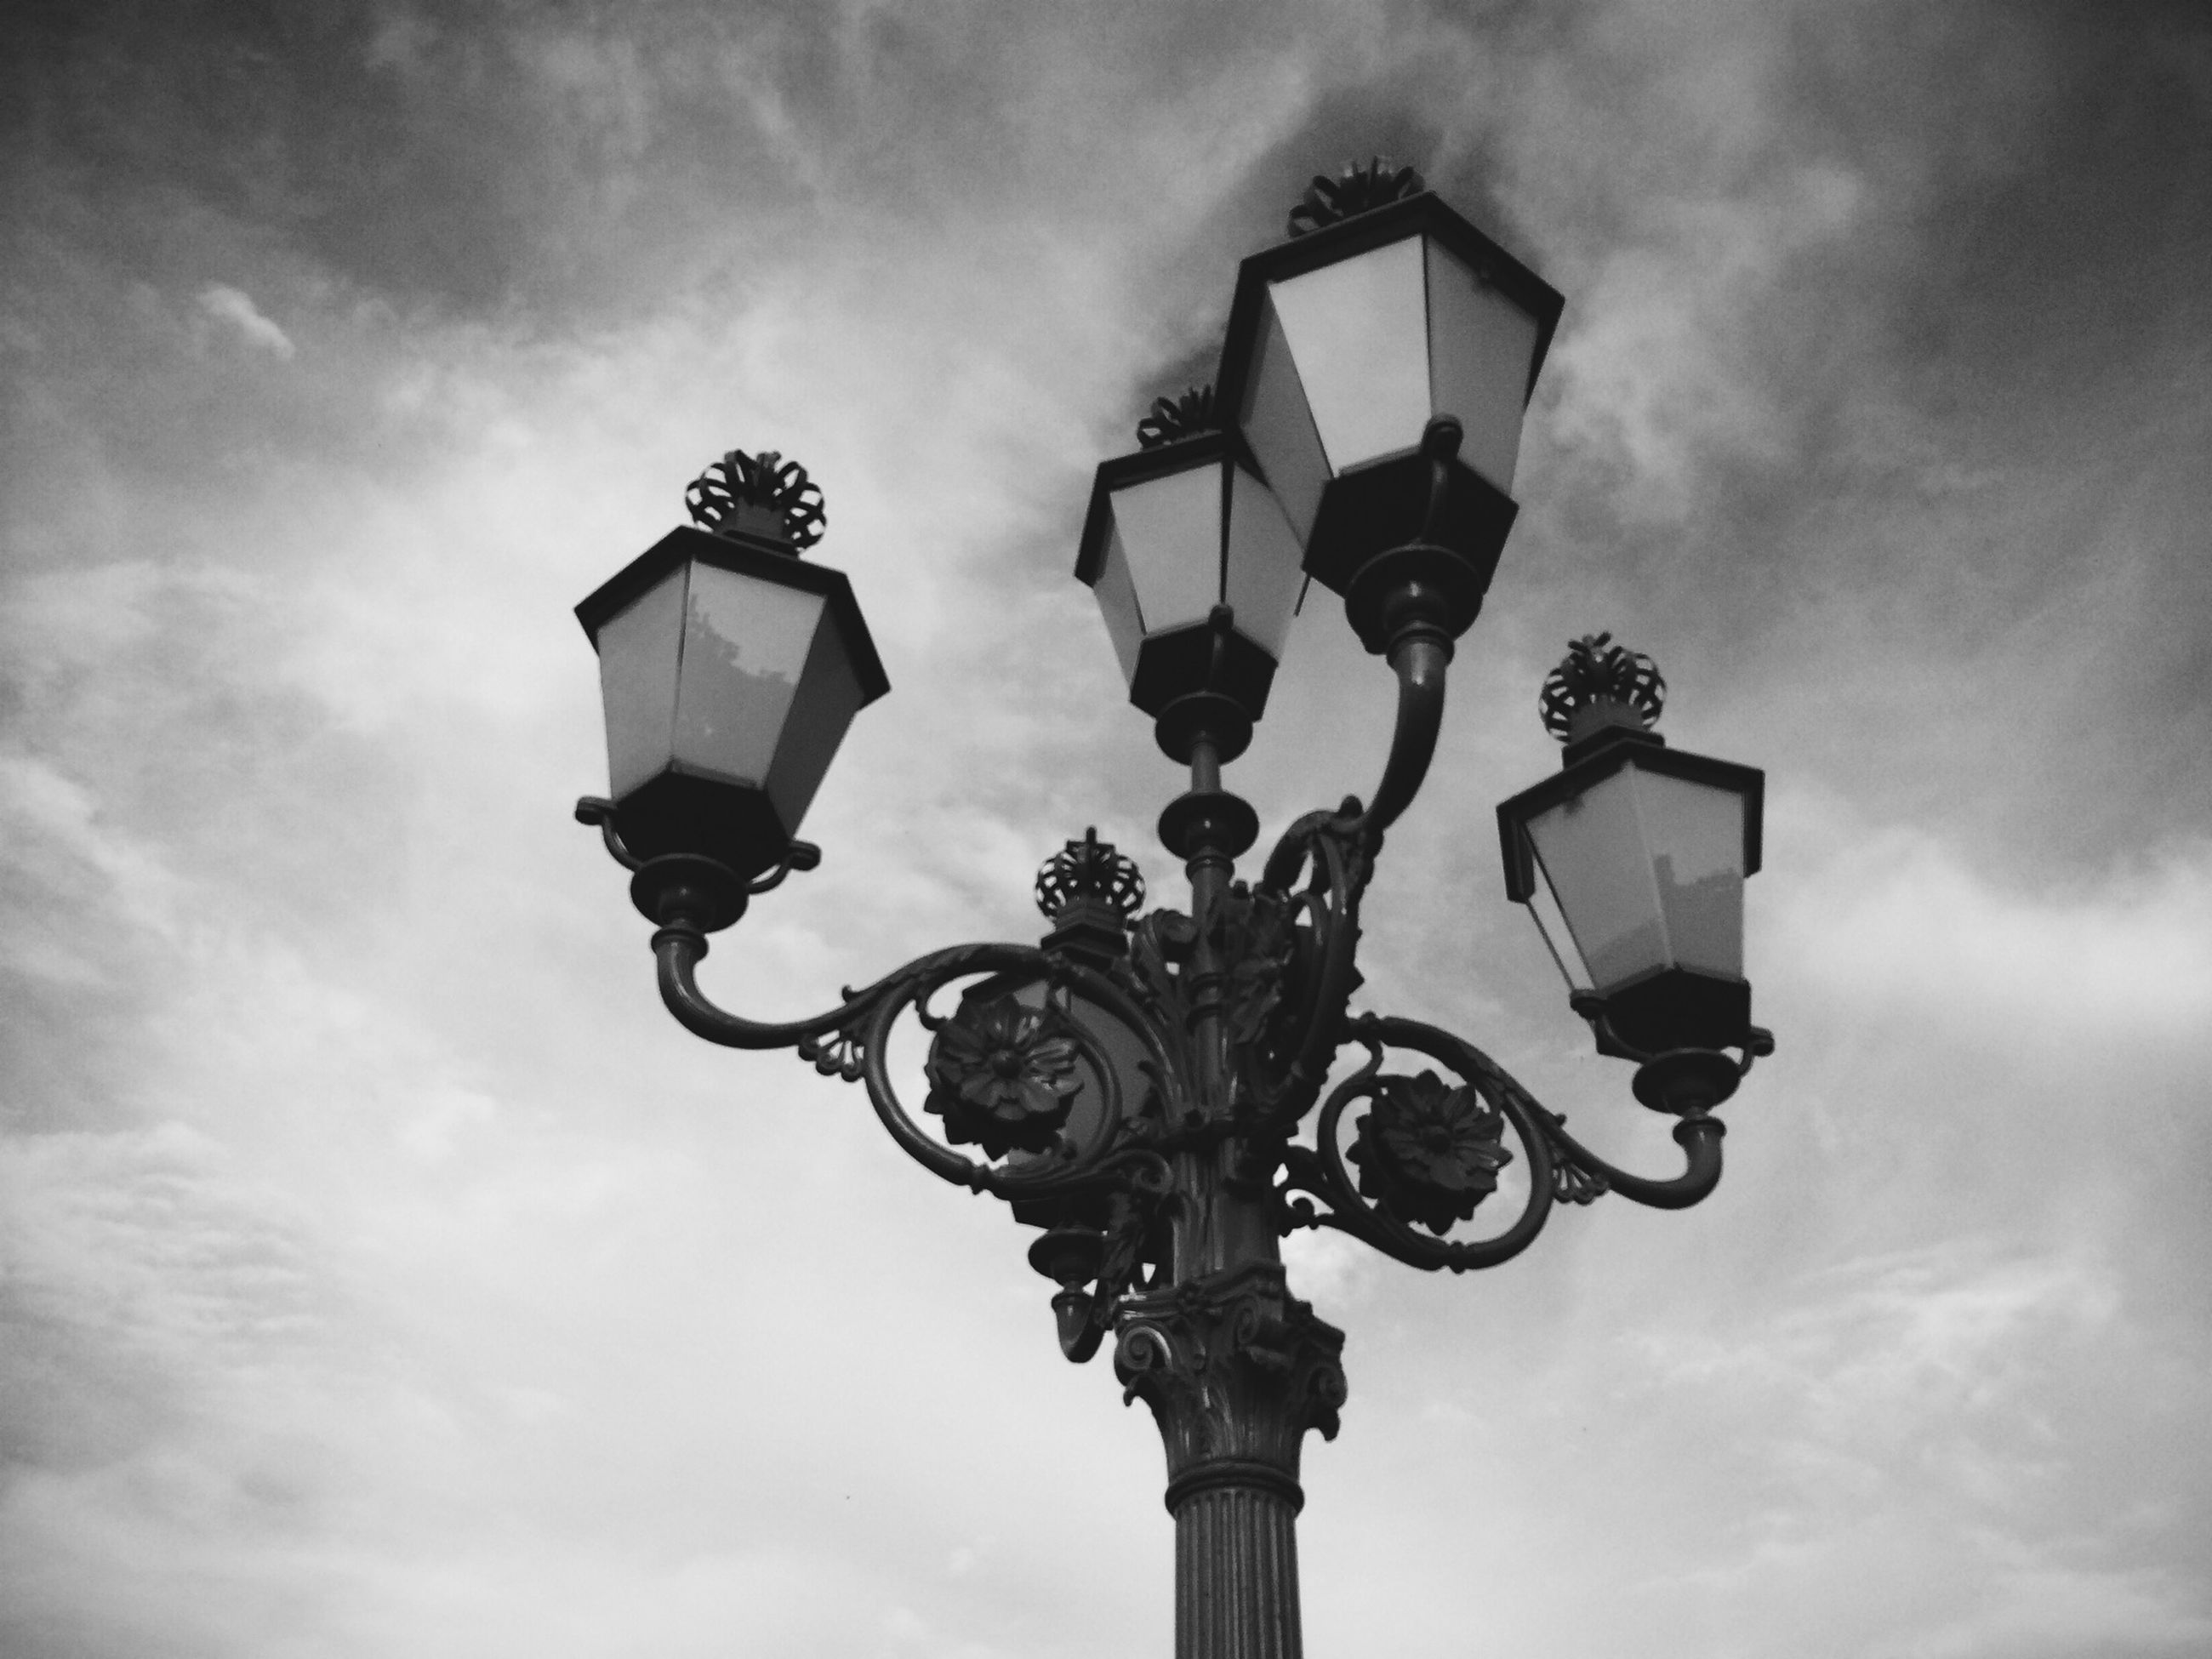 low angle view, sky, lighting equipment, street light, cloud - sky, cloudy, cloud, built structure, no people, hanging, day, electric lamp, outdoors, electric light, pole, lantern, lamp post, architecture, metal, electricity